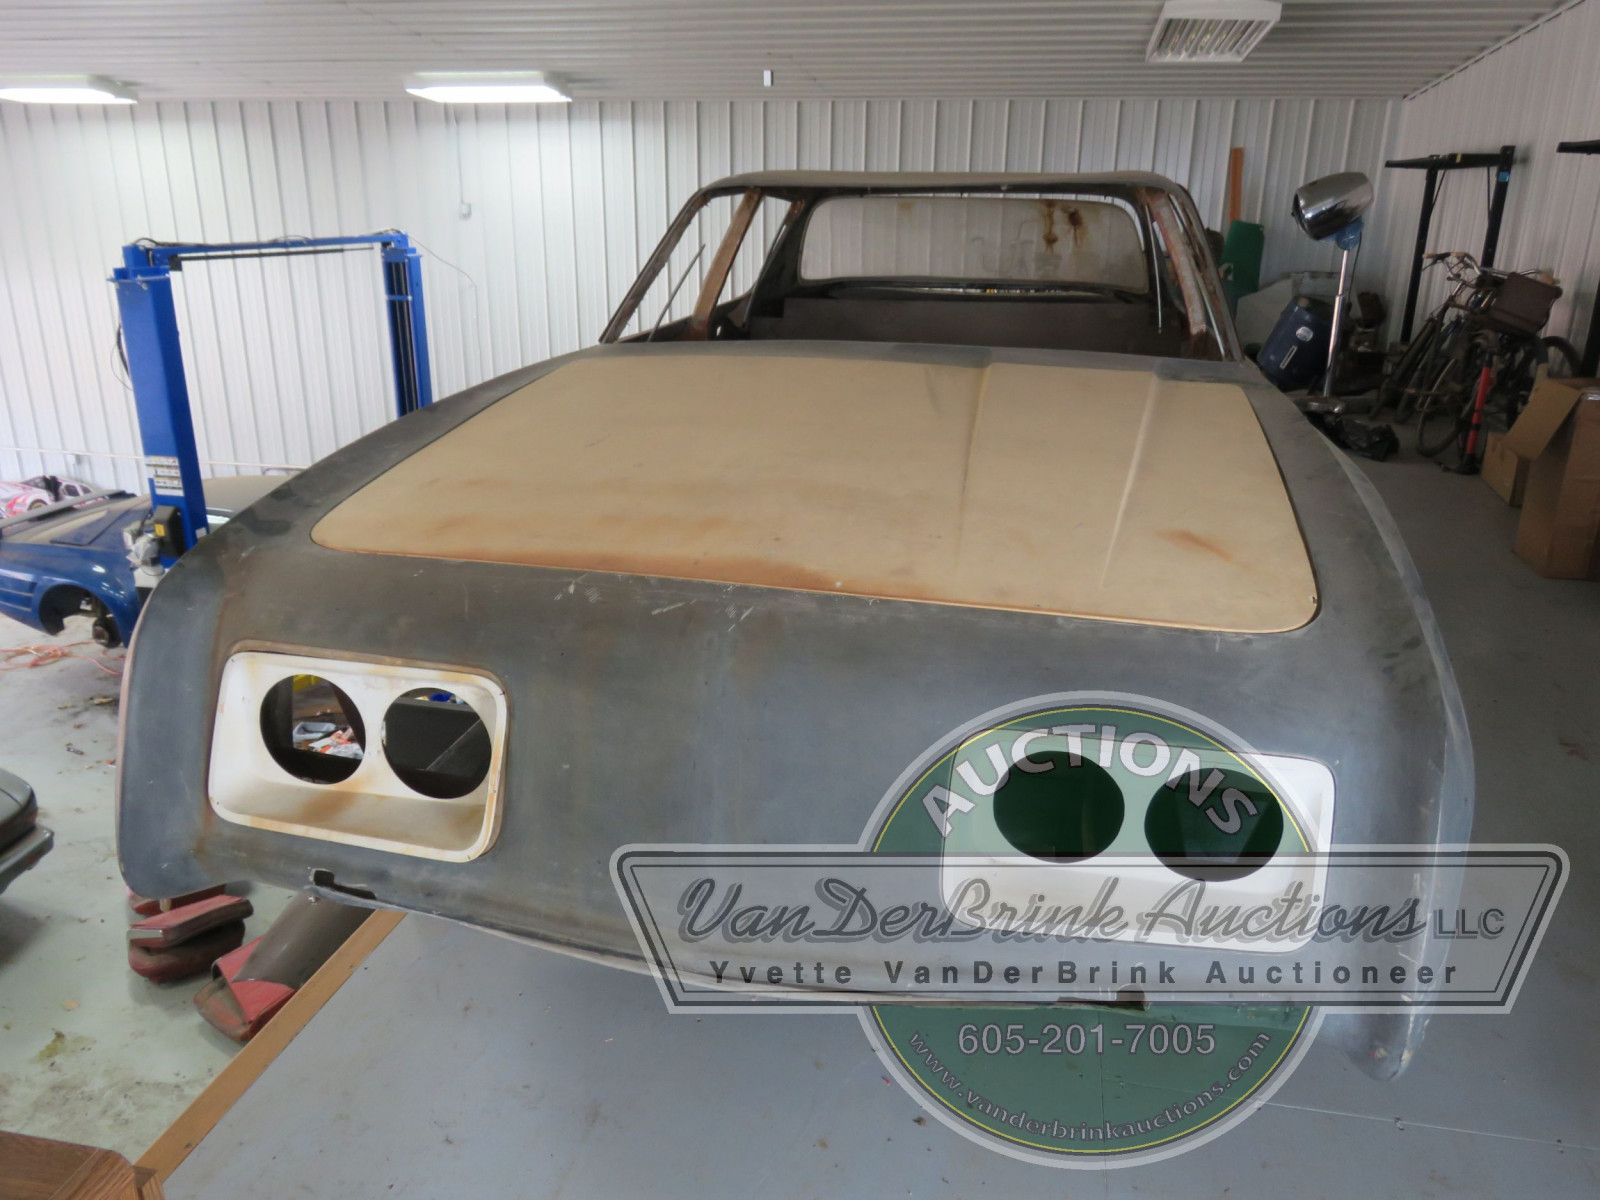 Rare Studebaker Avanti Prototype 4dr Engineering Body - Image 5